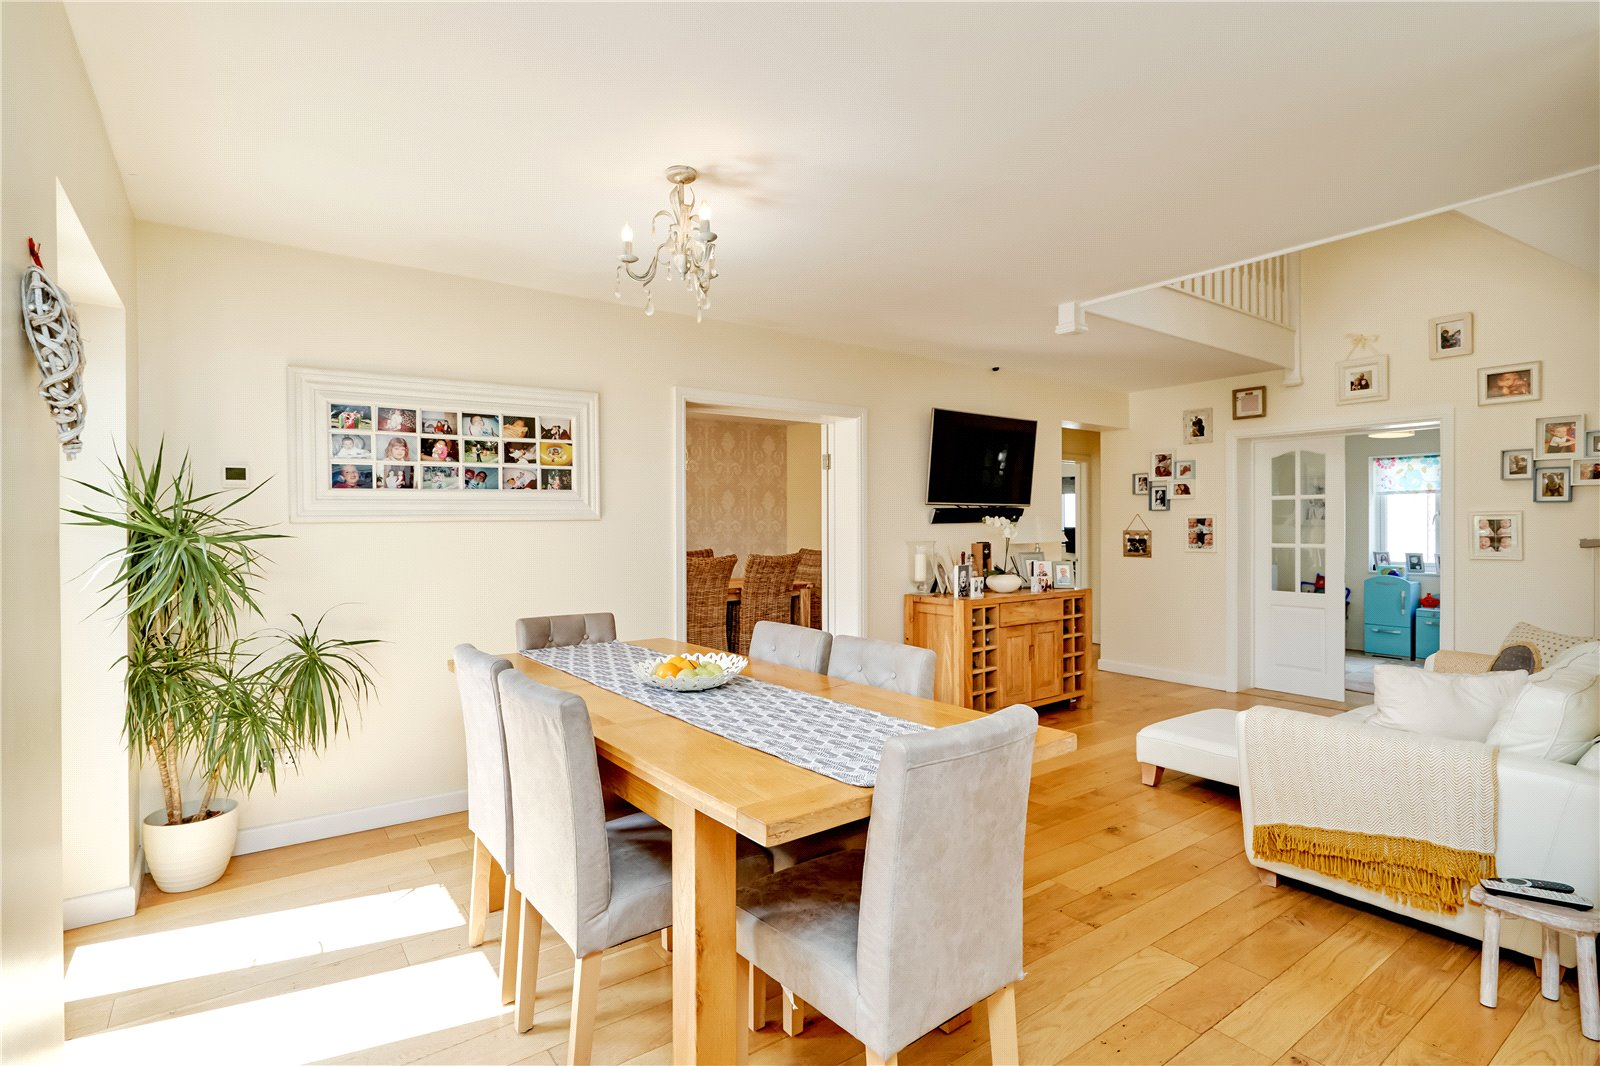 4 bed house for sale in Welwyn, AL6 0QG 12